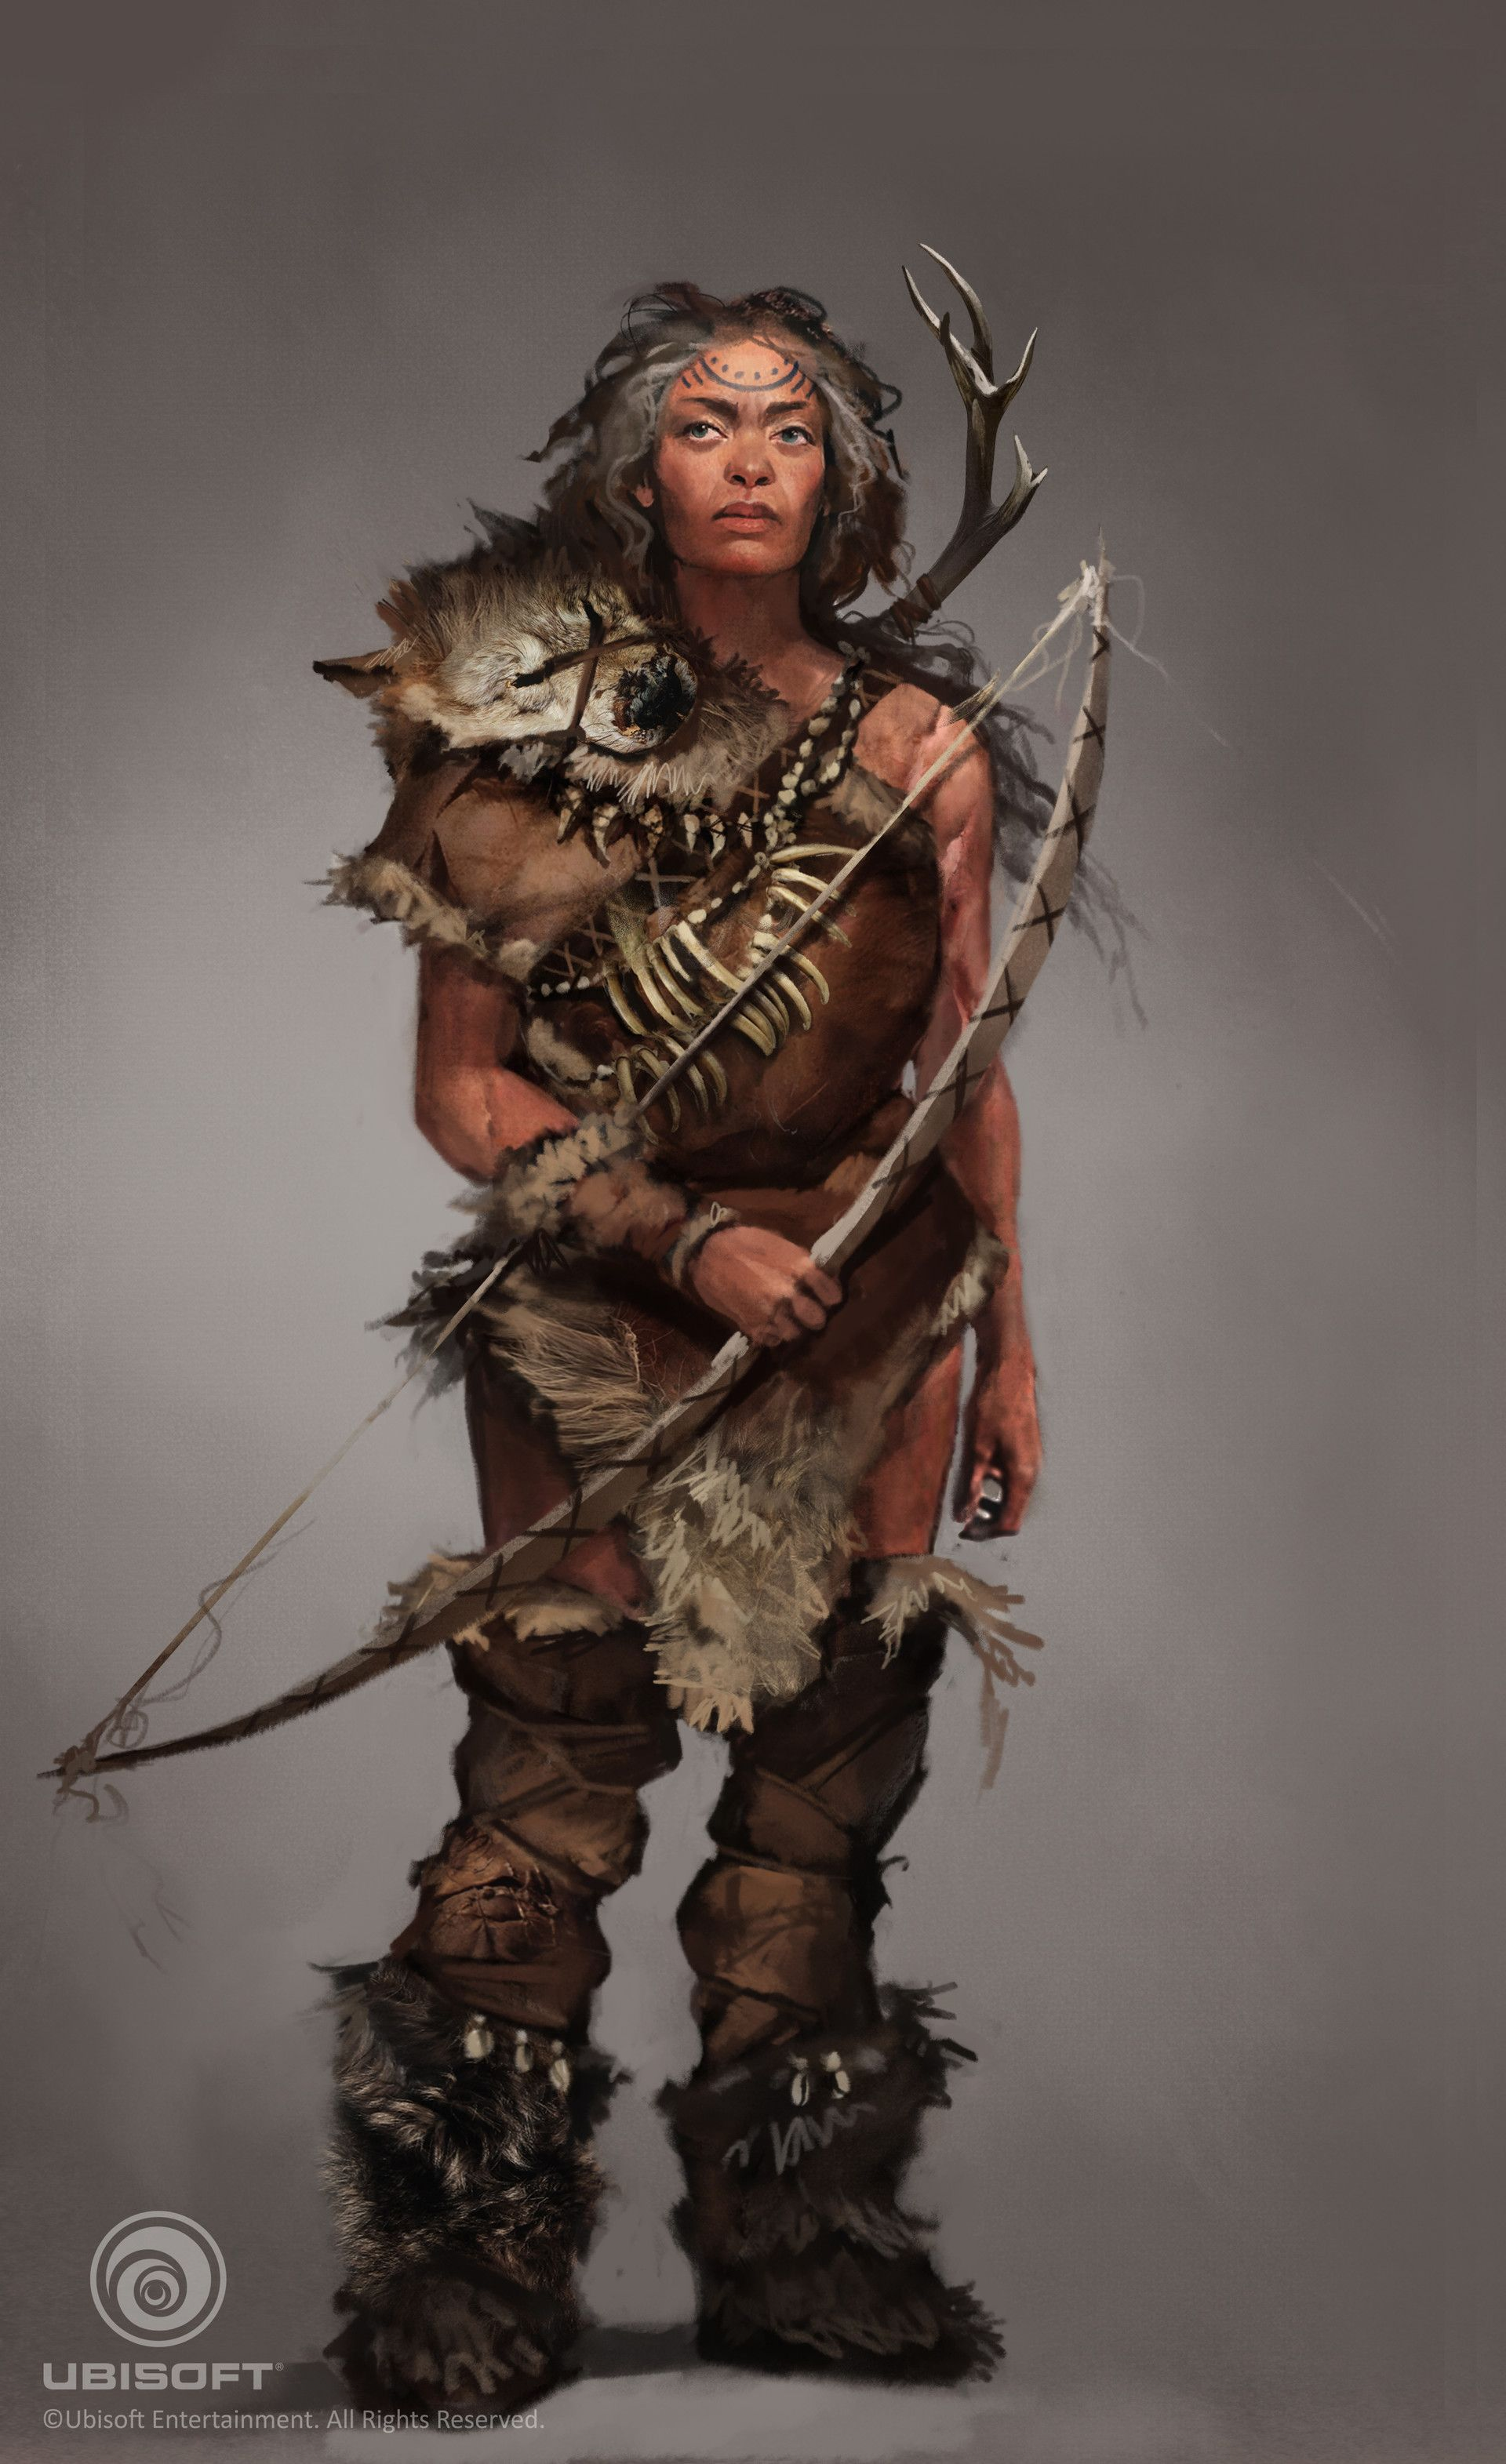 elder female ranger hunter native tribal character concept, Naomi Savoie